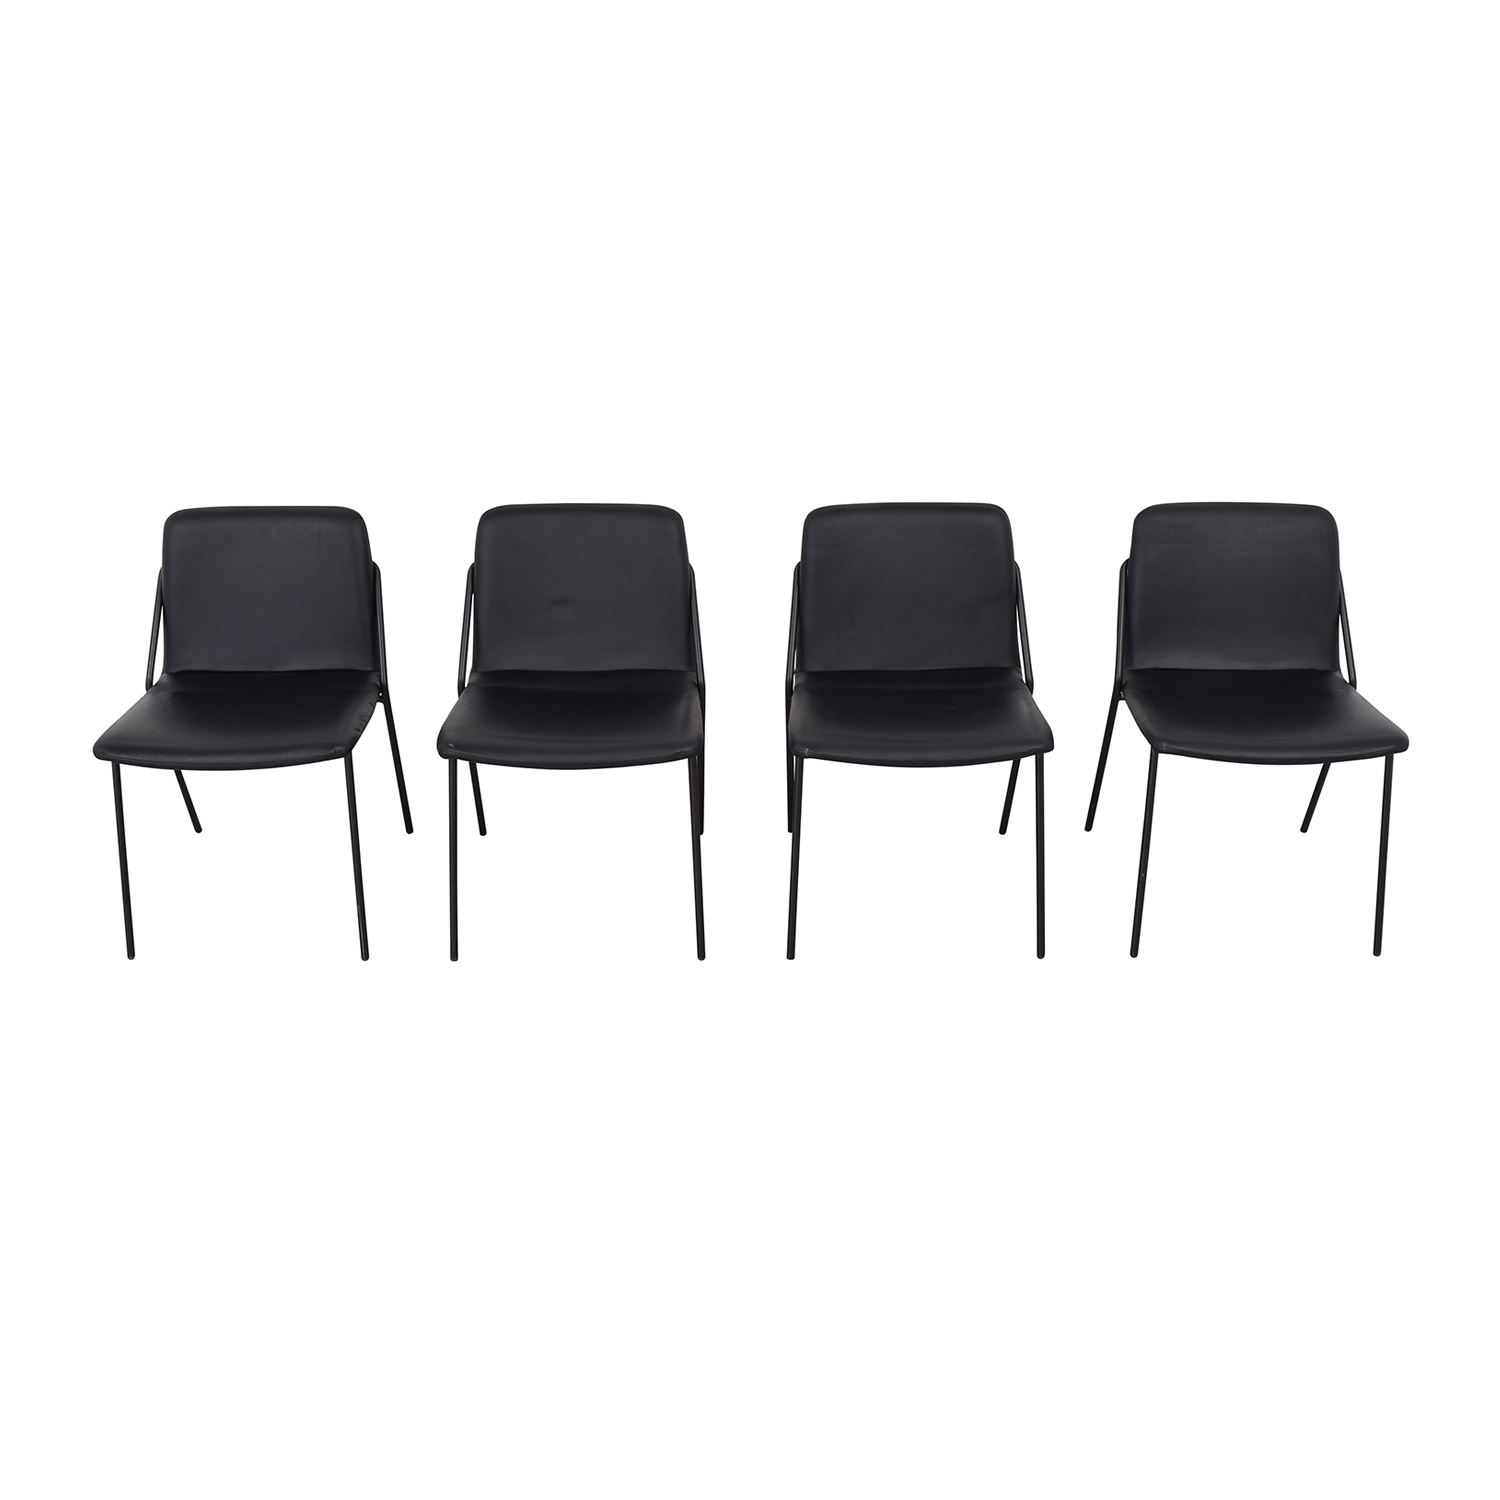 shop m.a.d. Black Sling Upholstered Chairs m.a.d. Dining Chairs